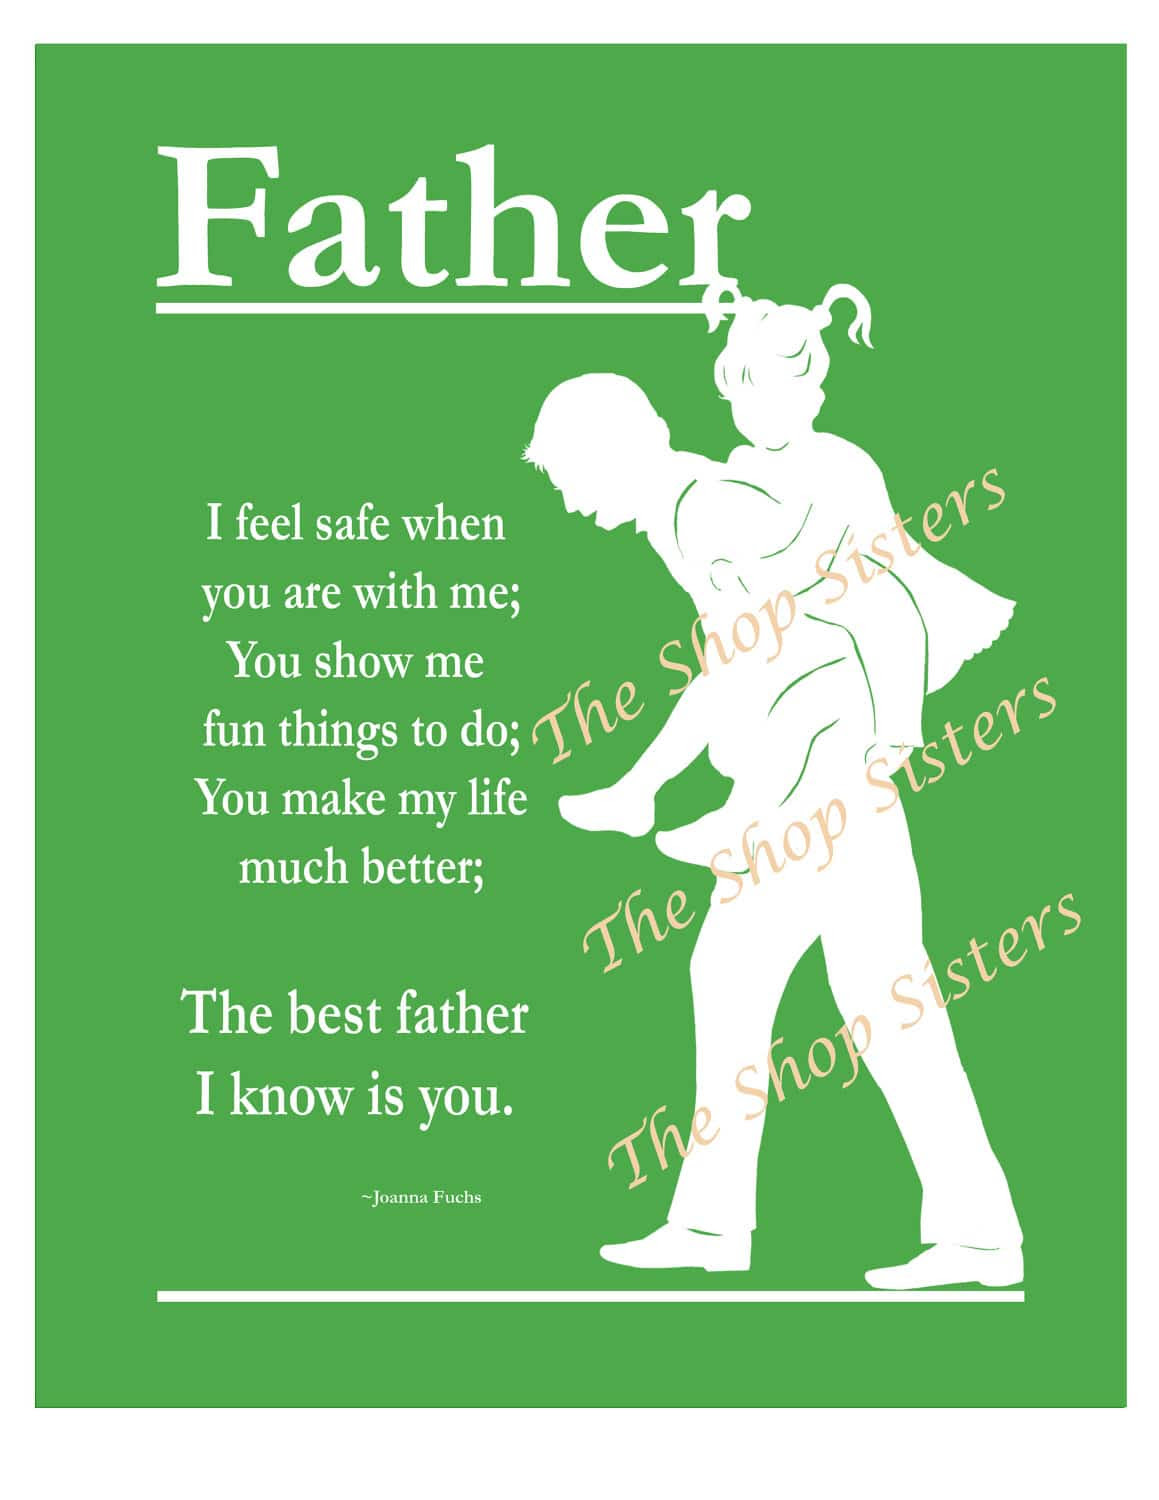 Fathers Day Special Hindi Poetry Gotteamdesigns